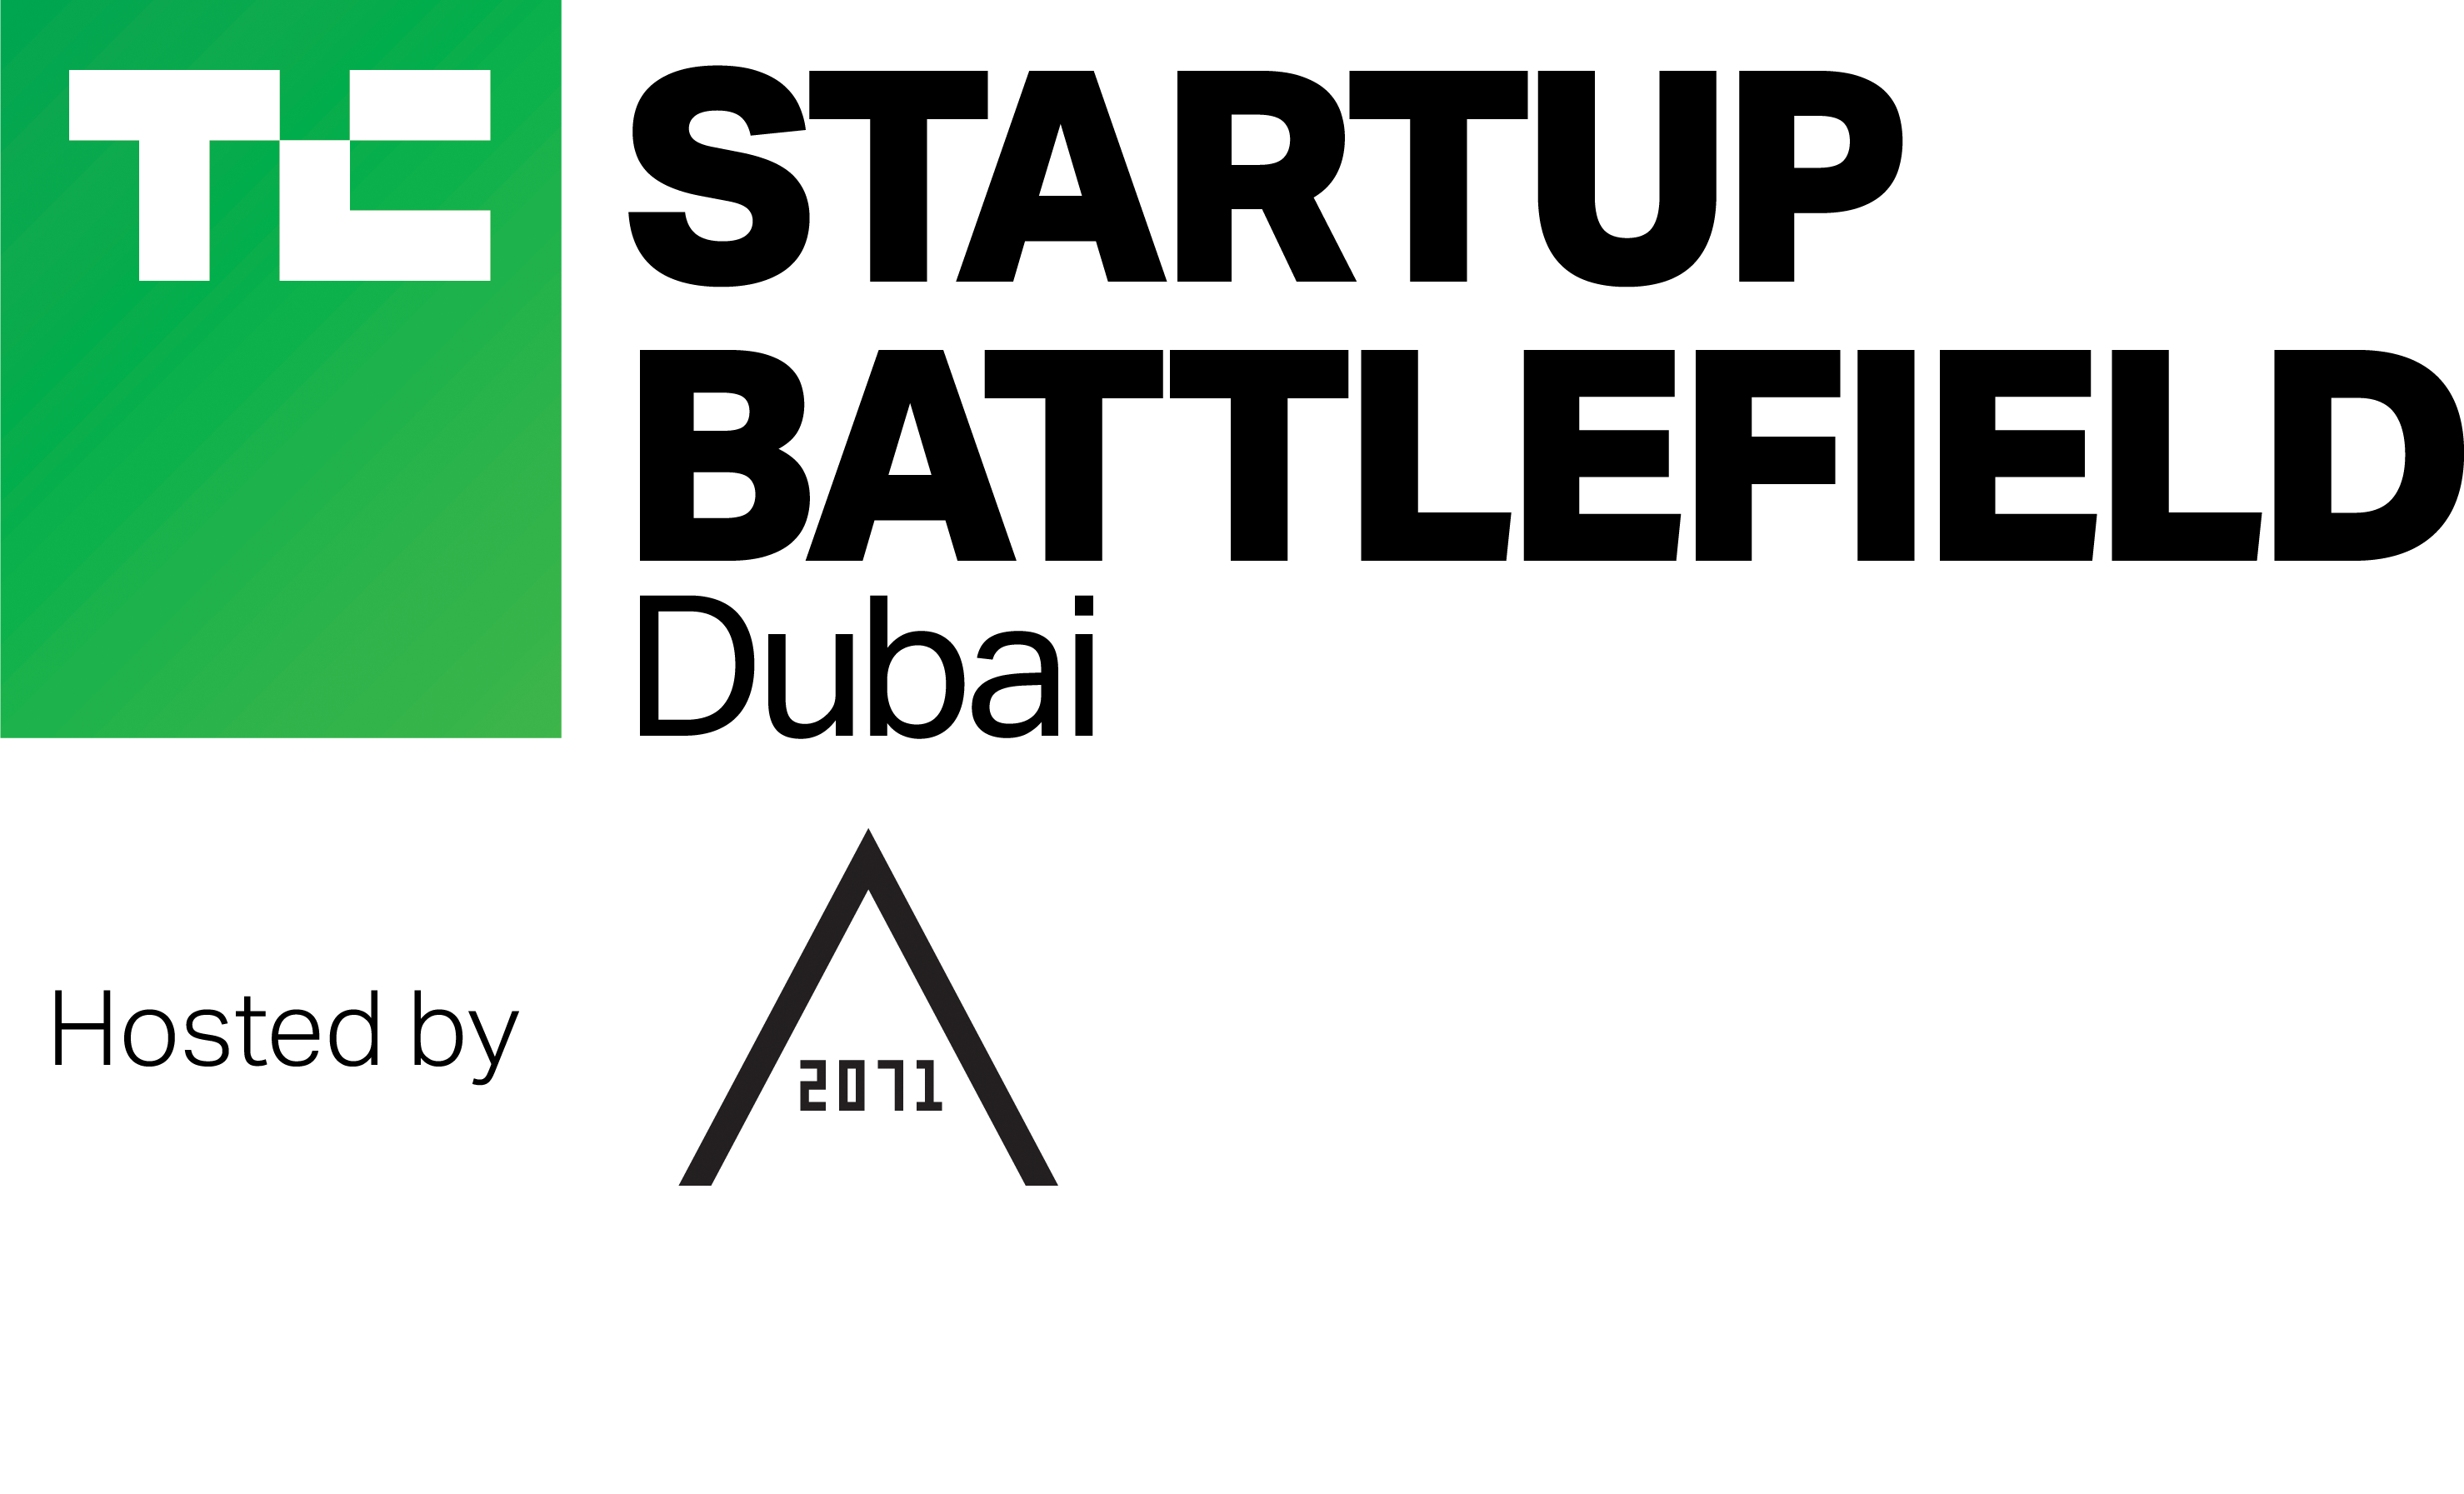 A new date for Startup Battlefield Dubai